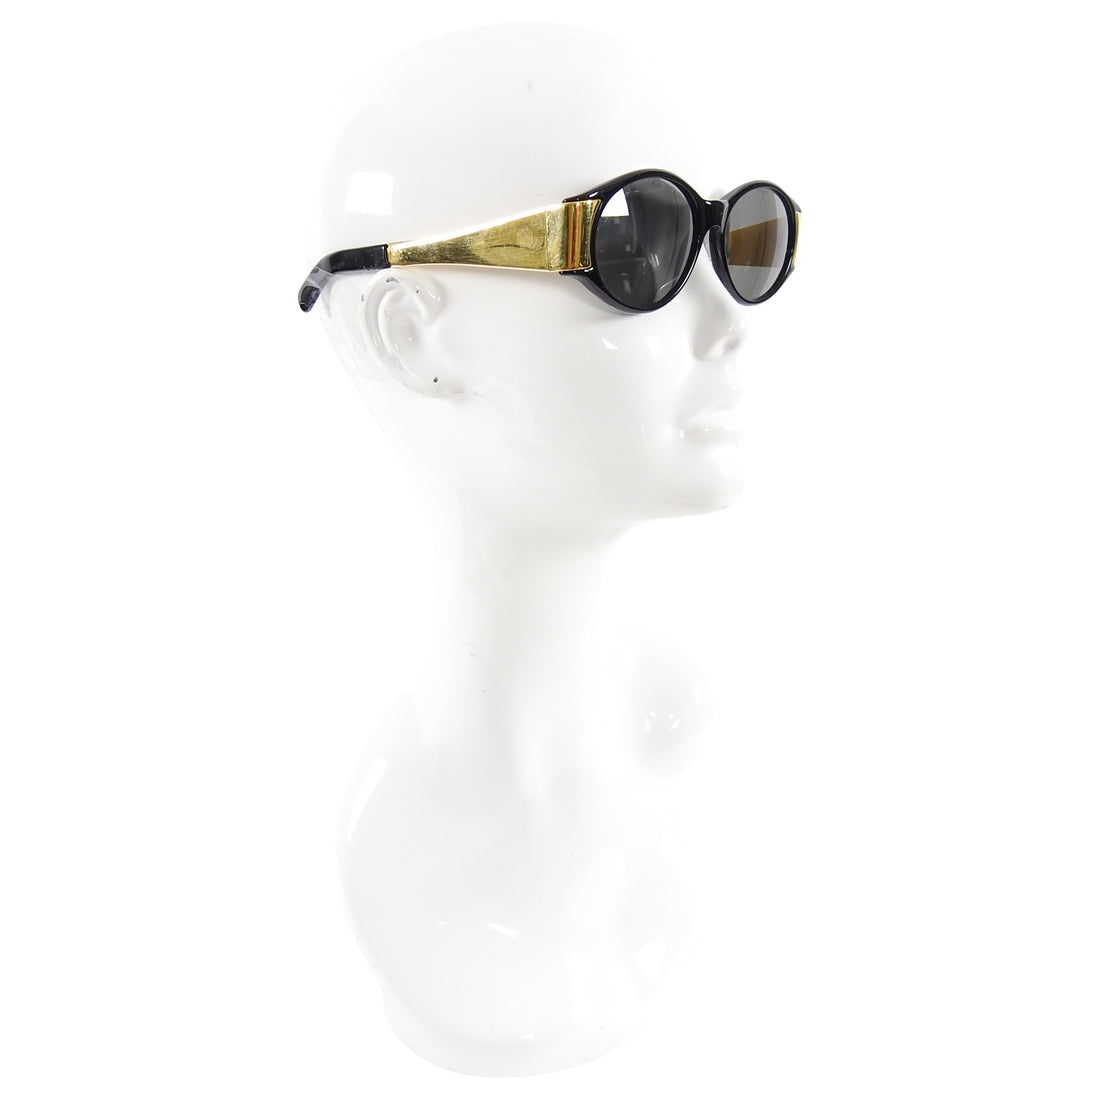 Gianfranco Ferre Vintage 1990's Black and Gold Sunglasses GFF141